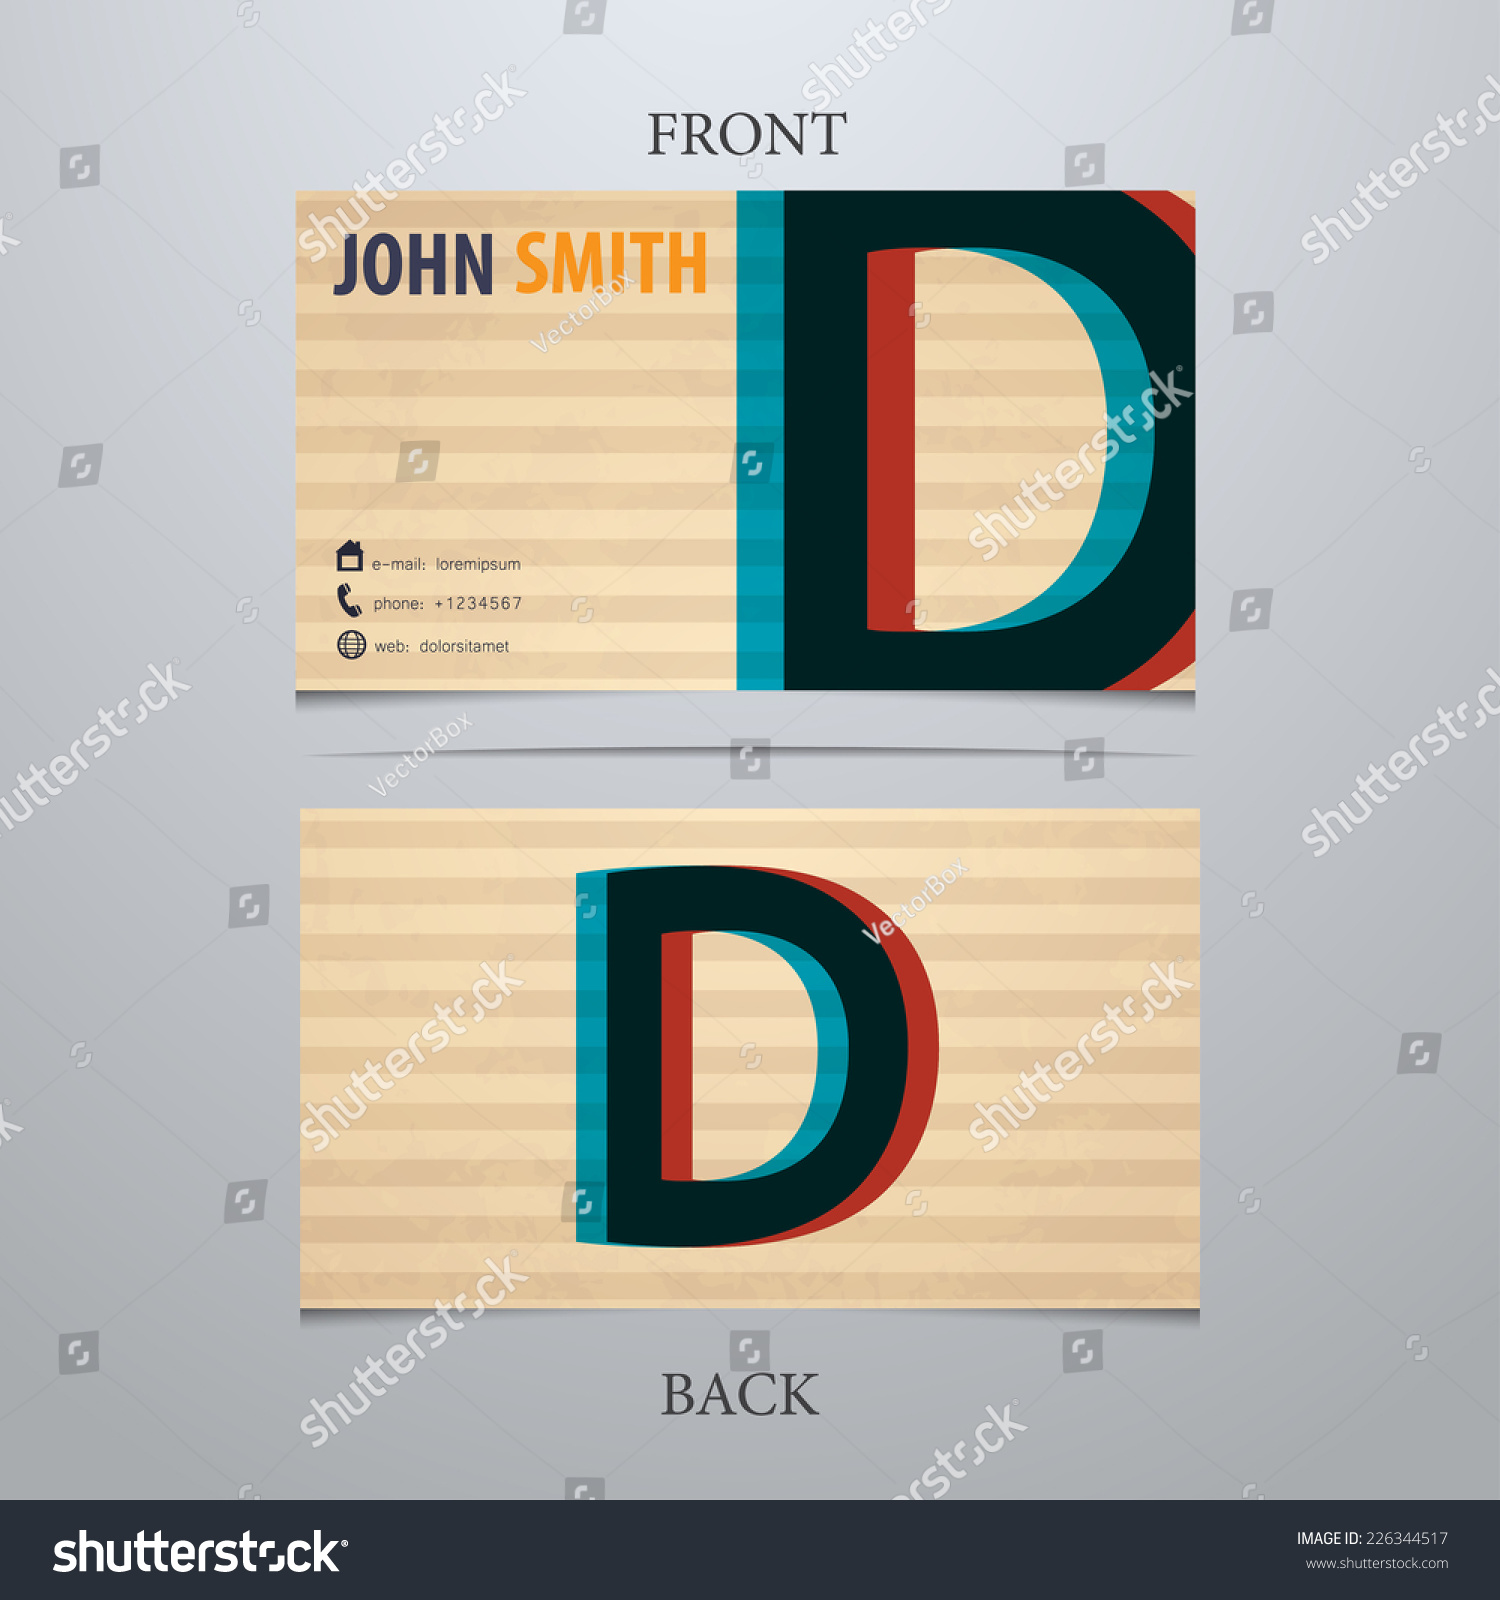 Business card template letter d stock vector 226344517 shutterstock business card template letter d colourmoves